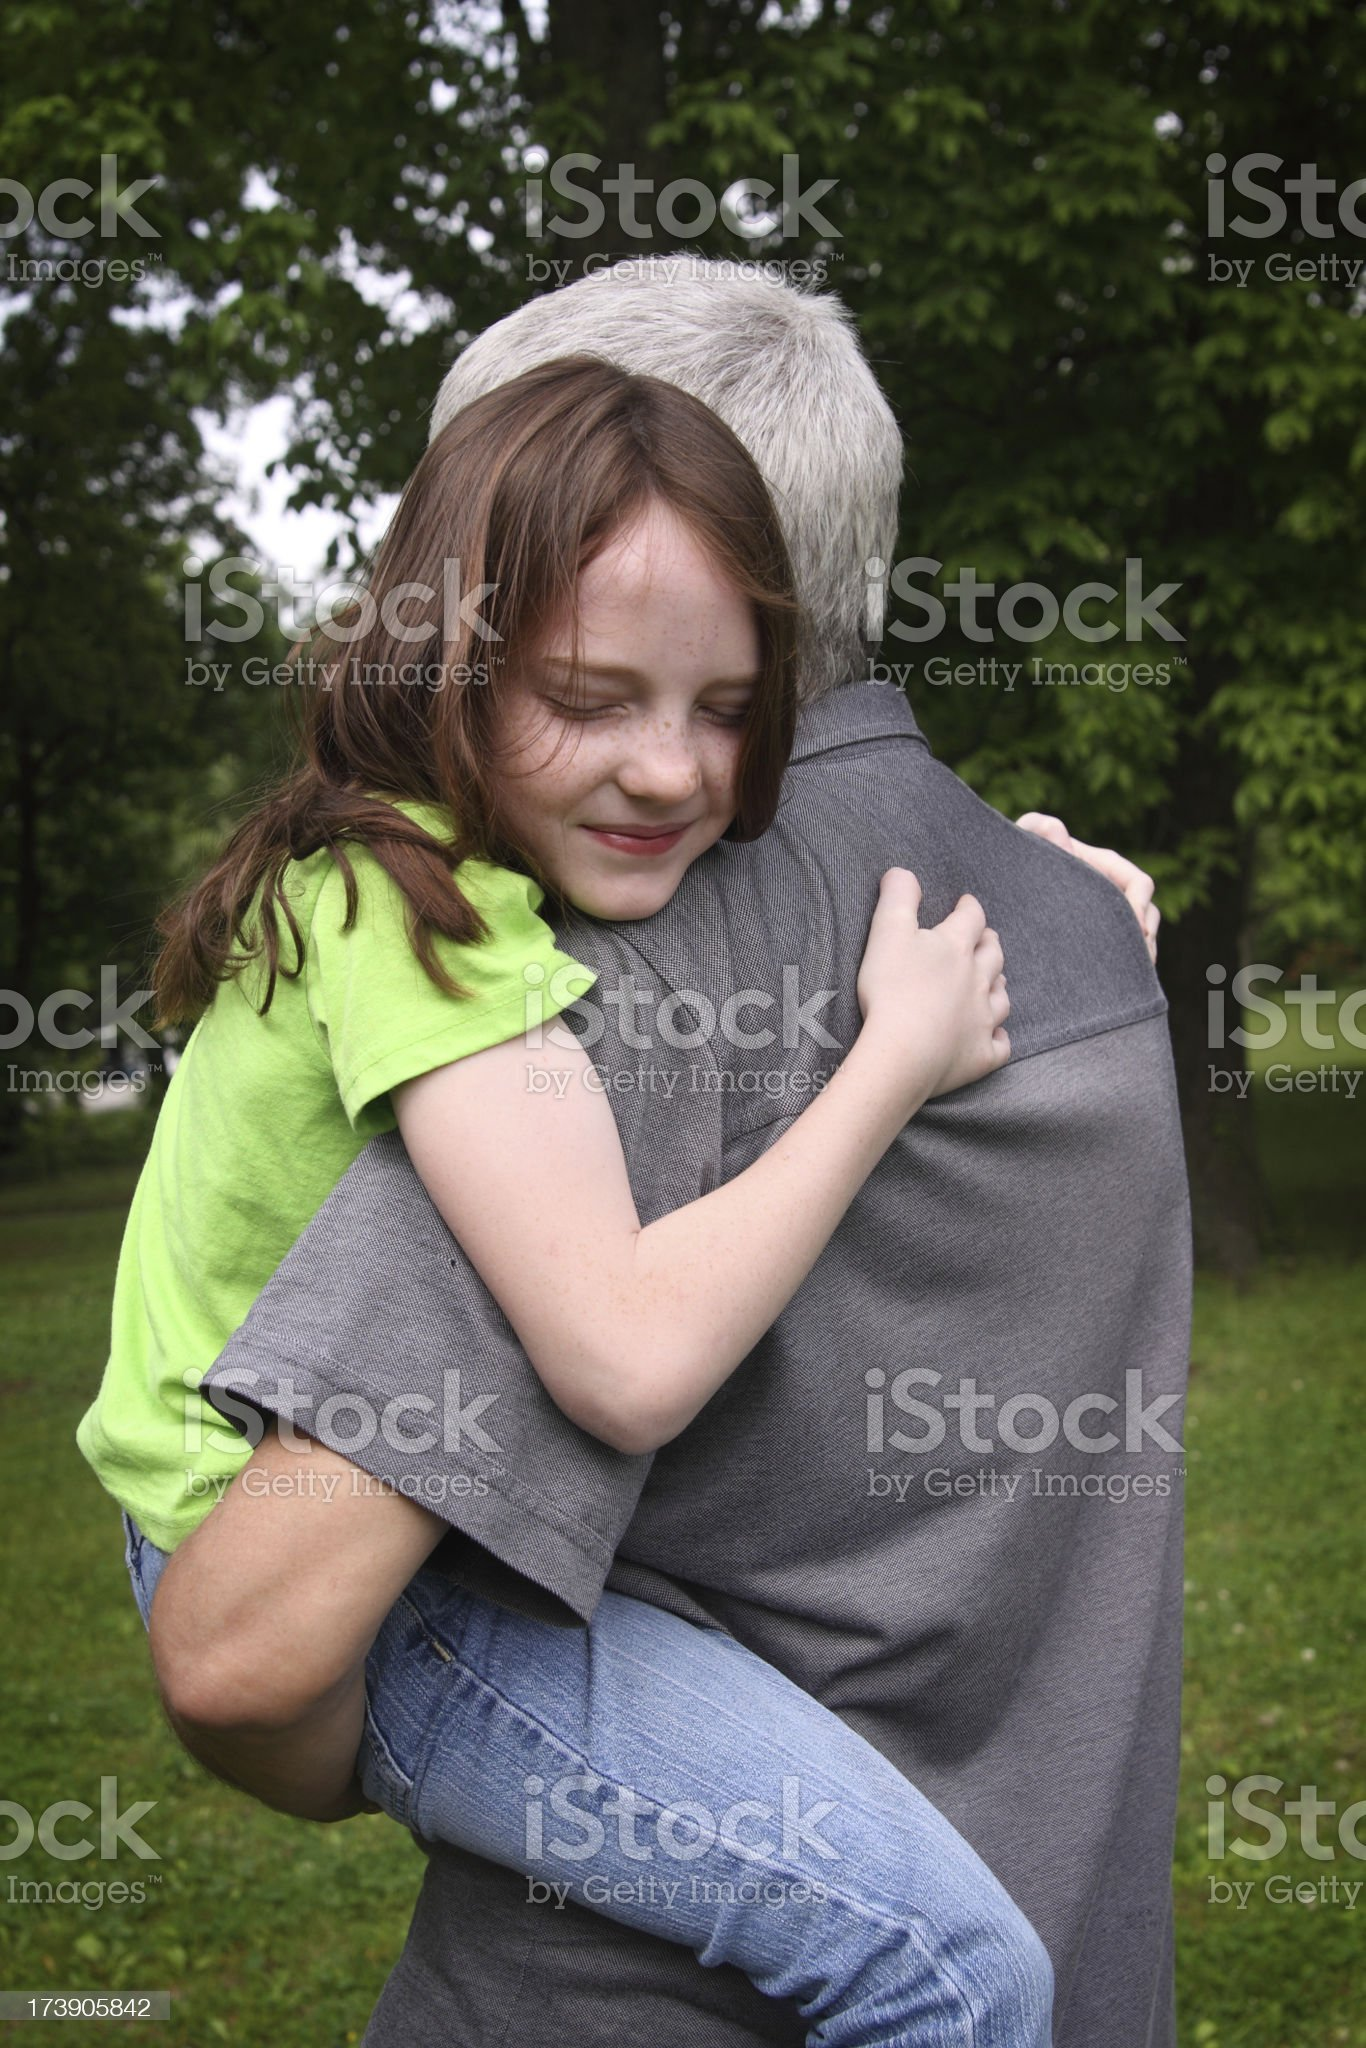 Holding On royalty-free stock photo